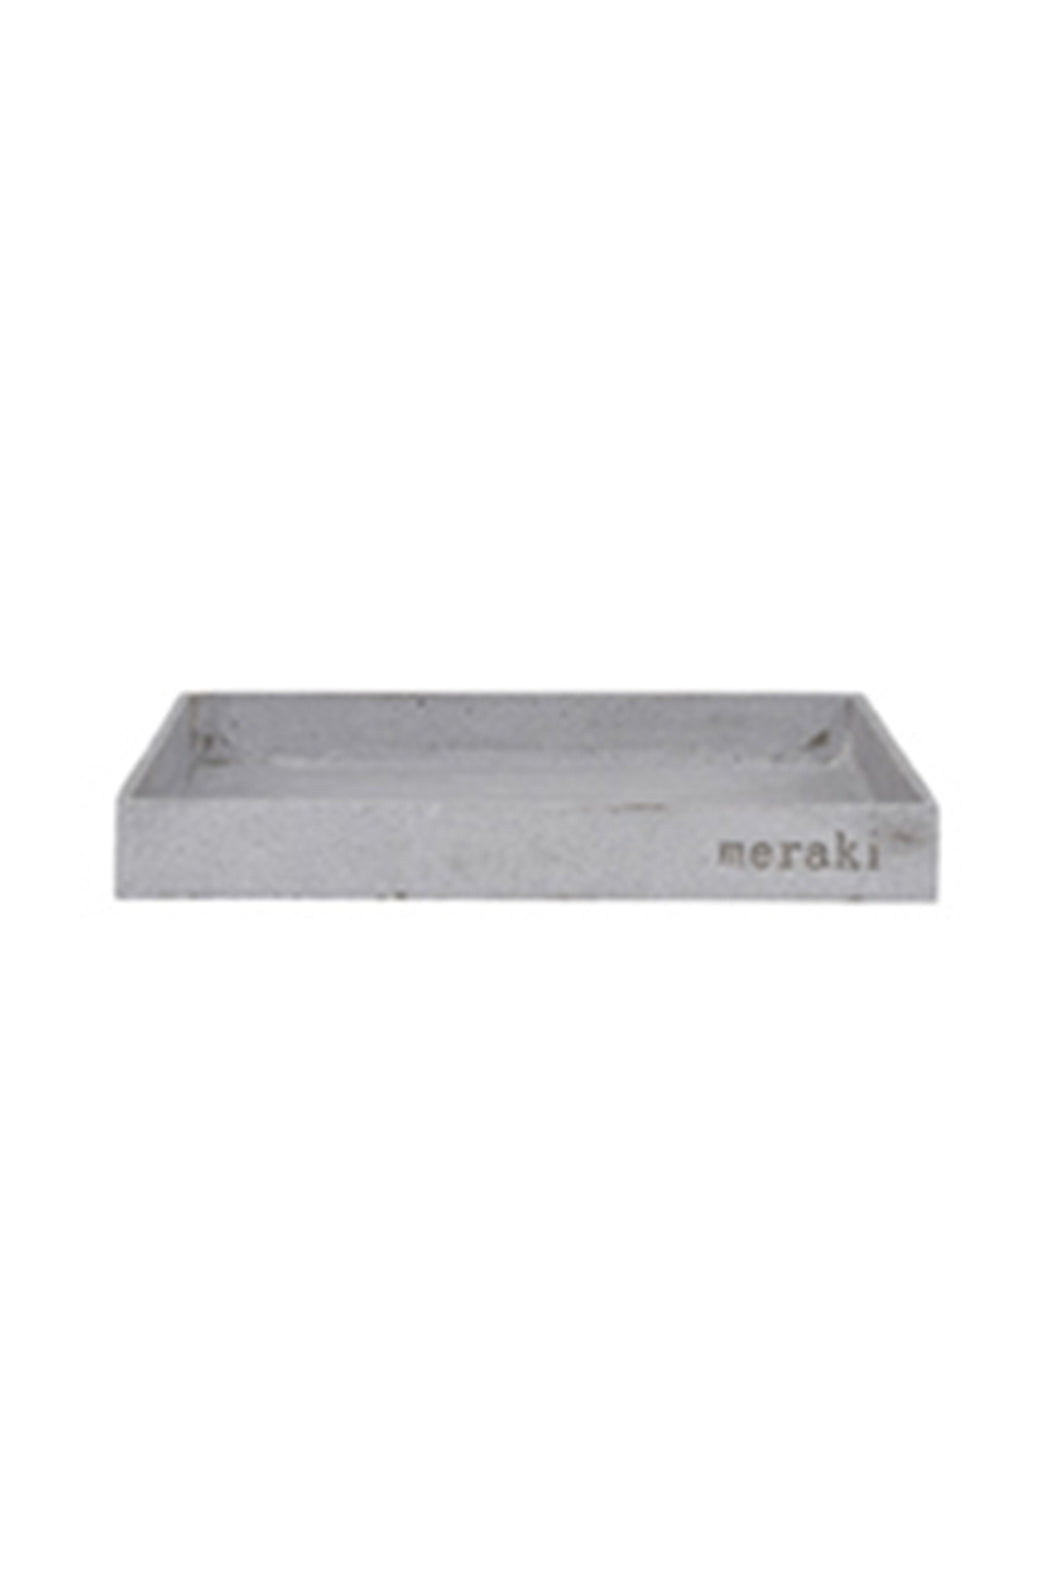 Meraki - Tray - Concrete - Large